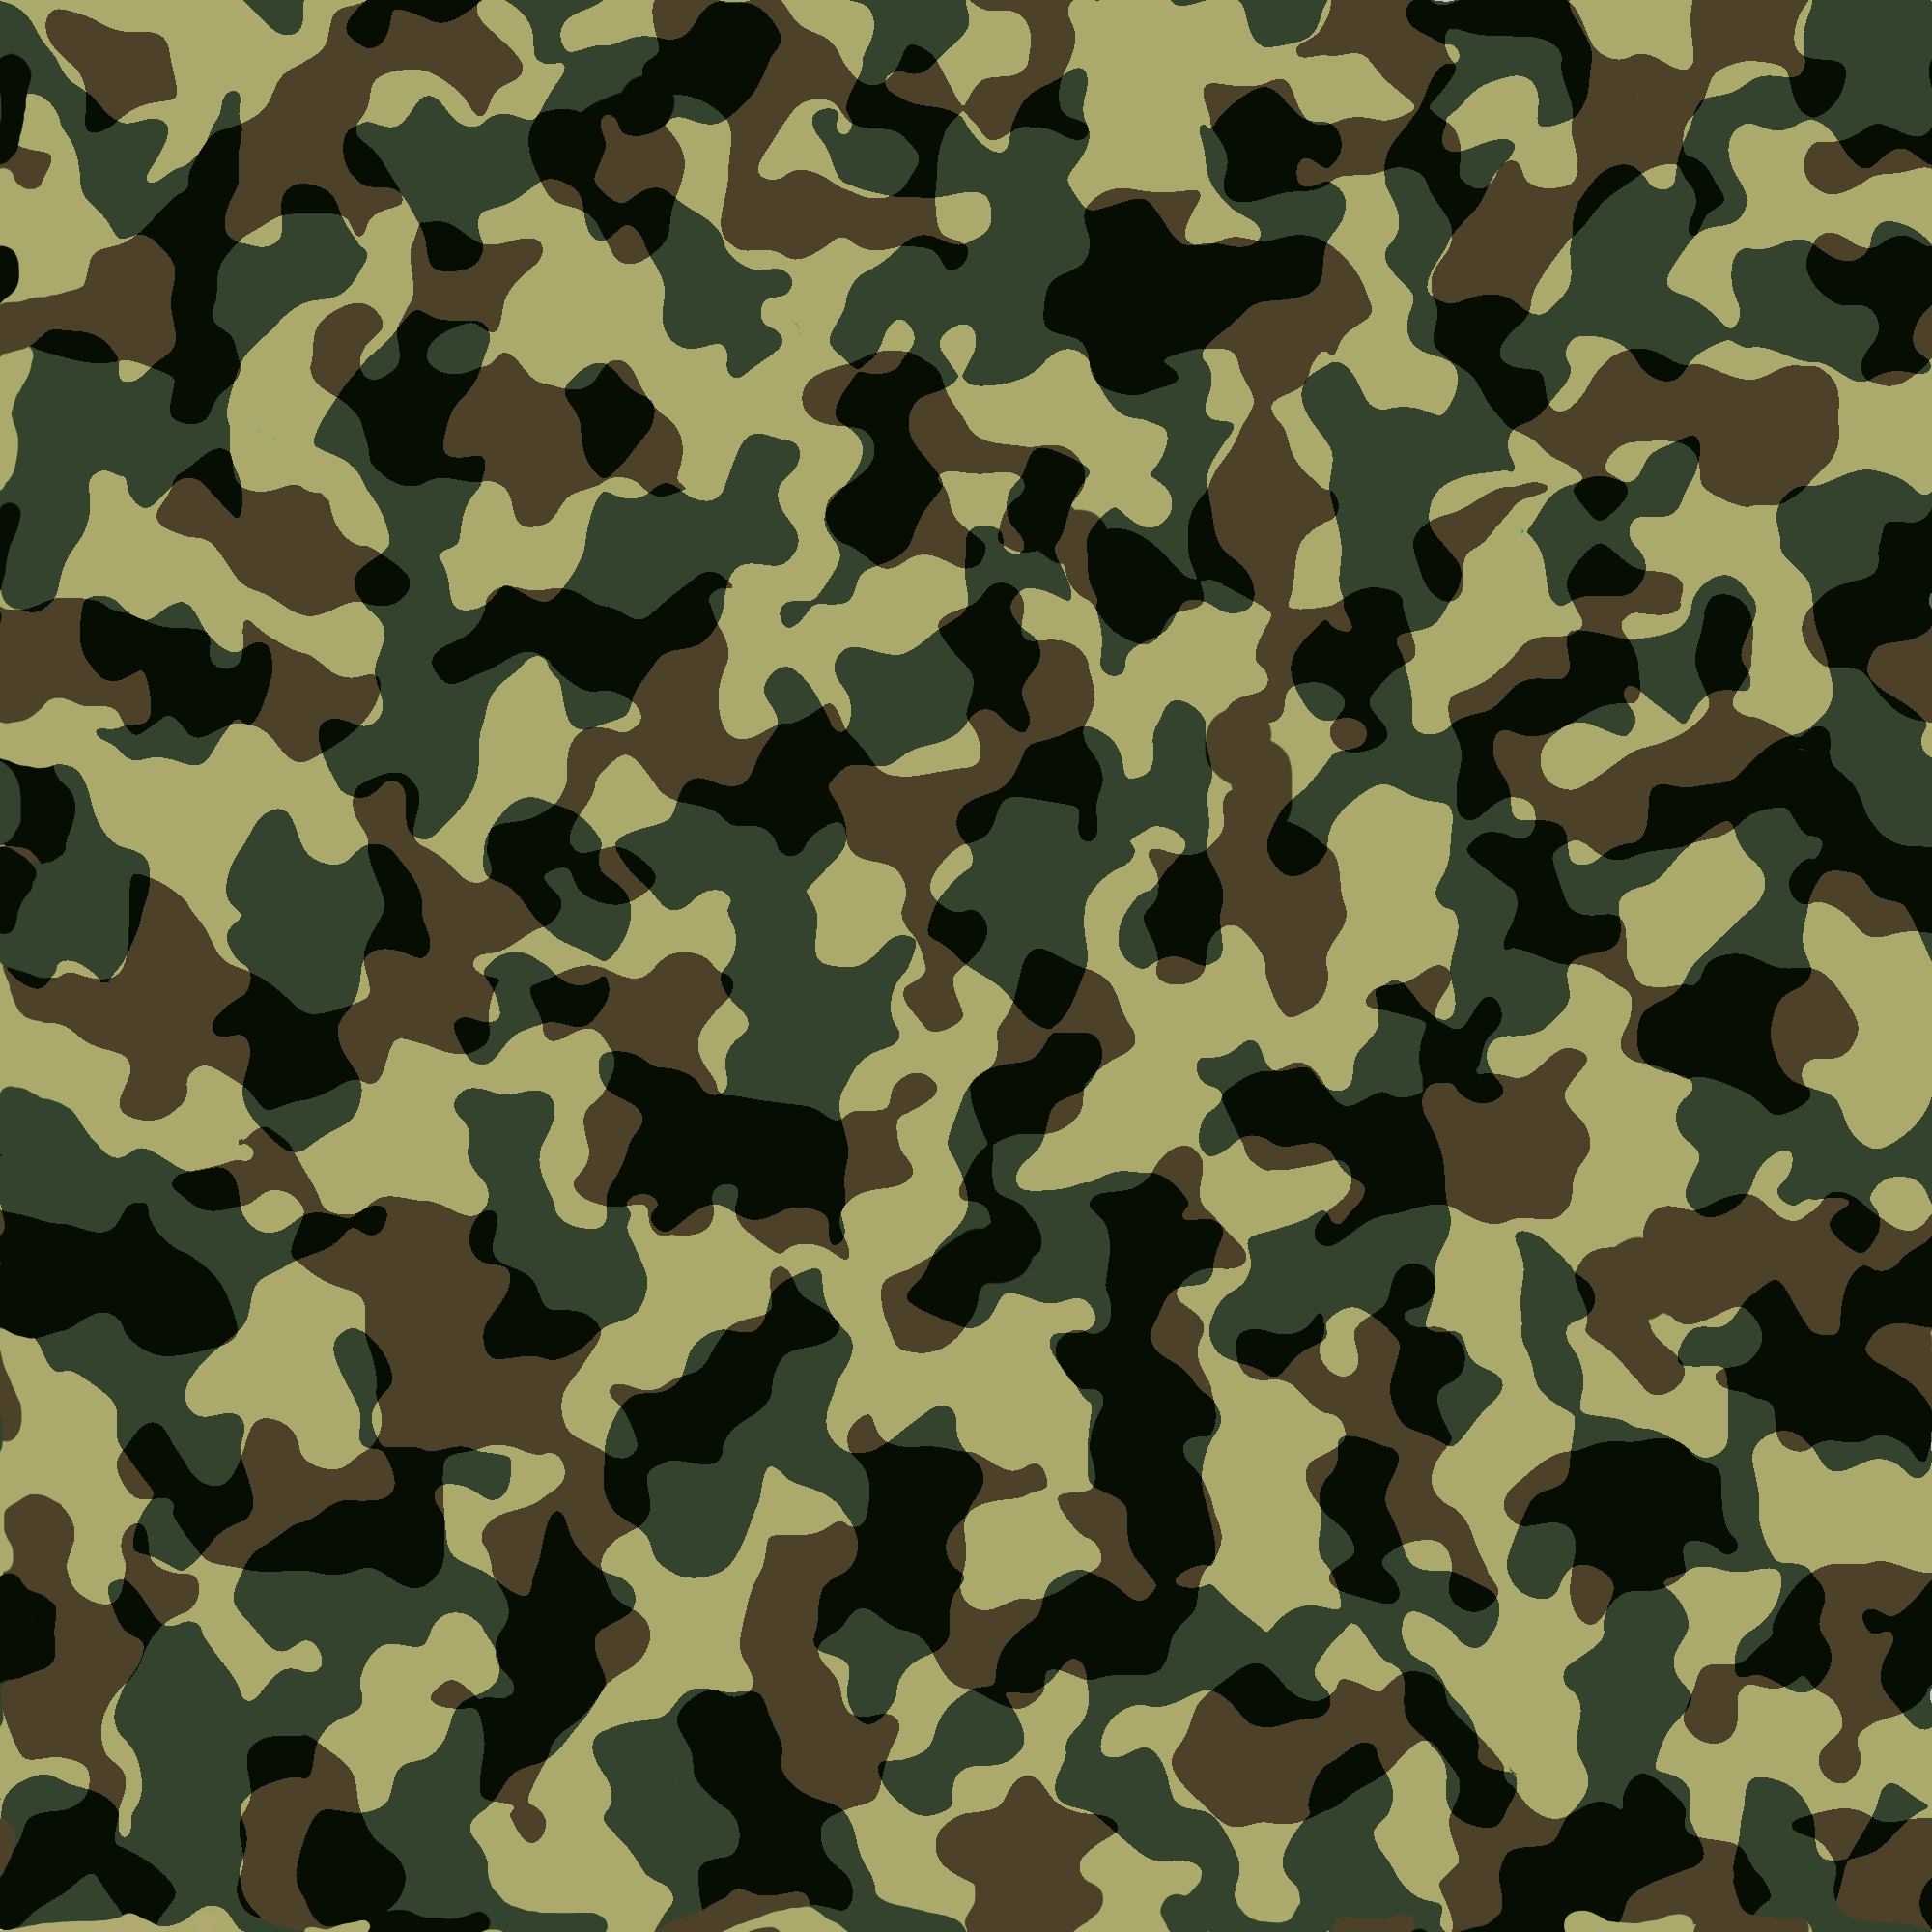 File:Camouflage pattern texture.png.